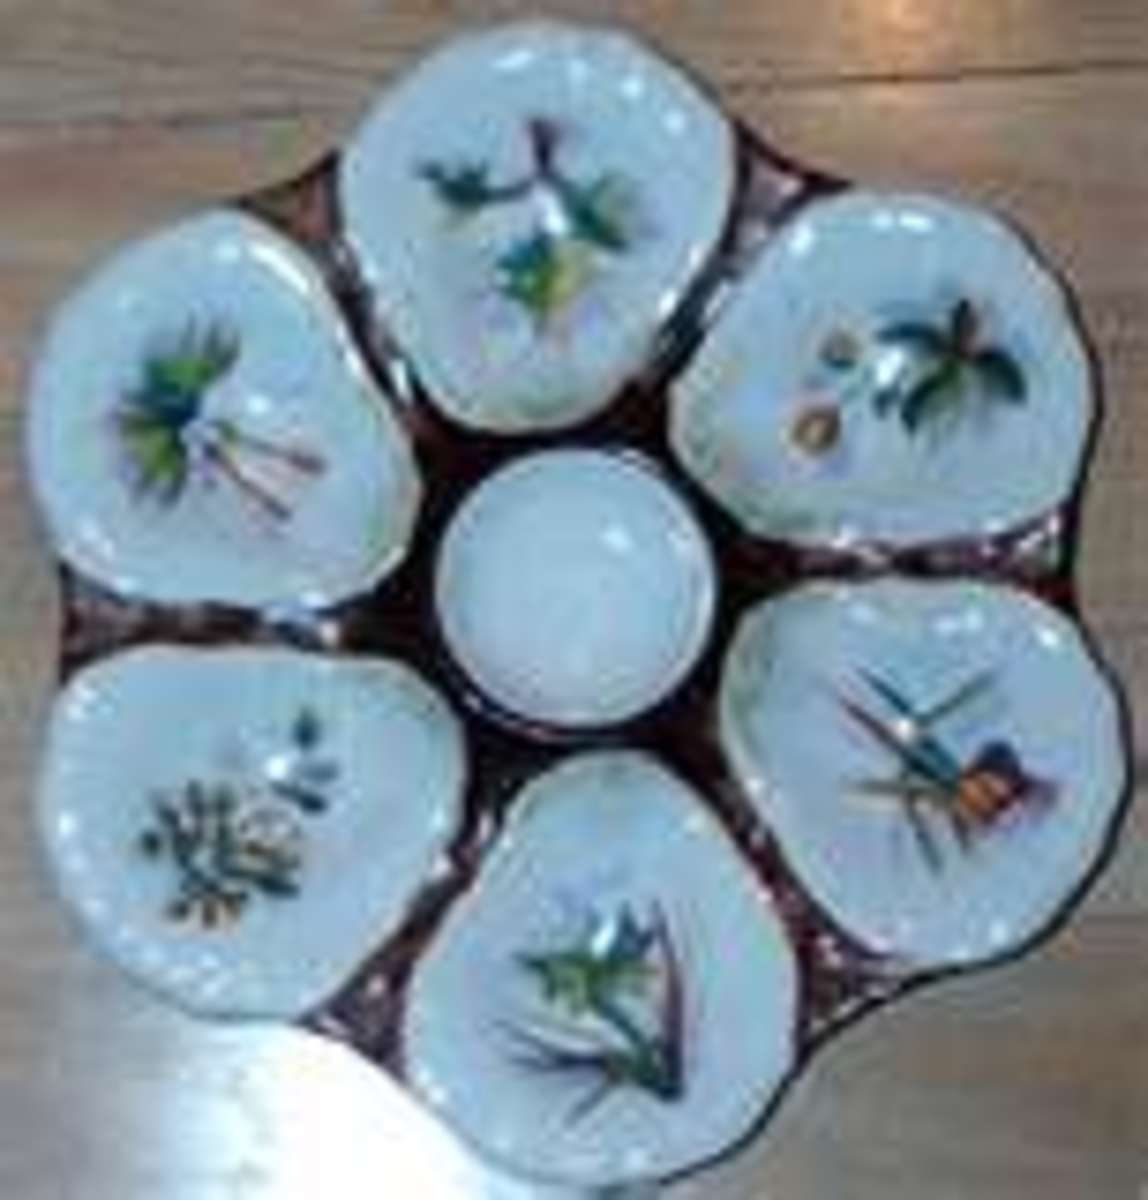 Another beautiful collectible oyster plate!